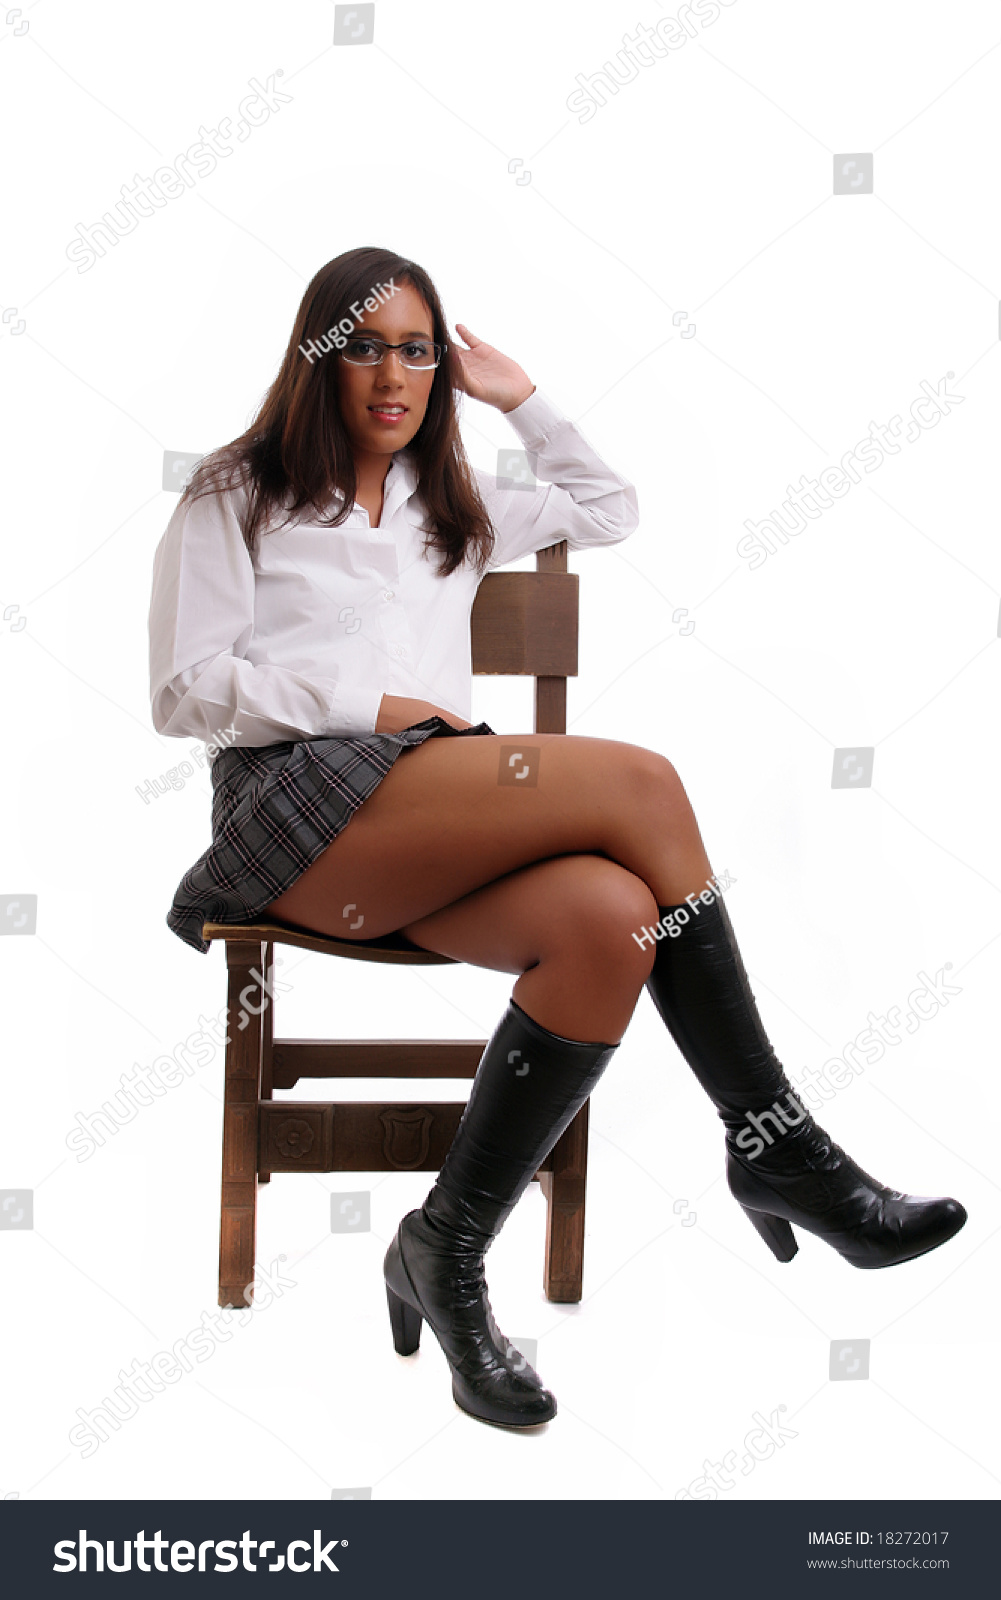 stock-photo-hot-businesswoman-posing-isolated-over-white-background-18272017.jpg